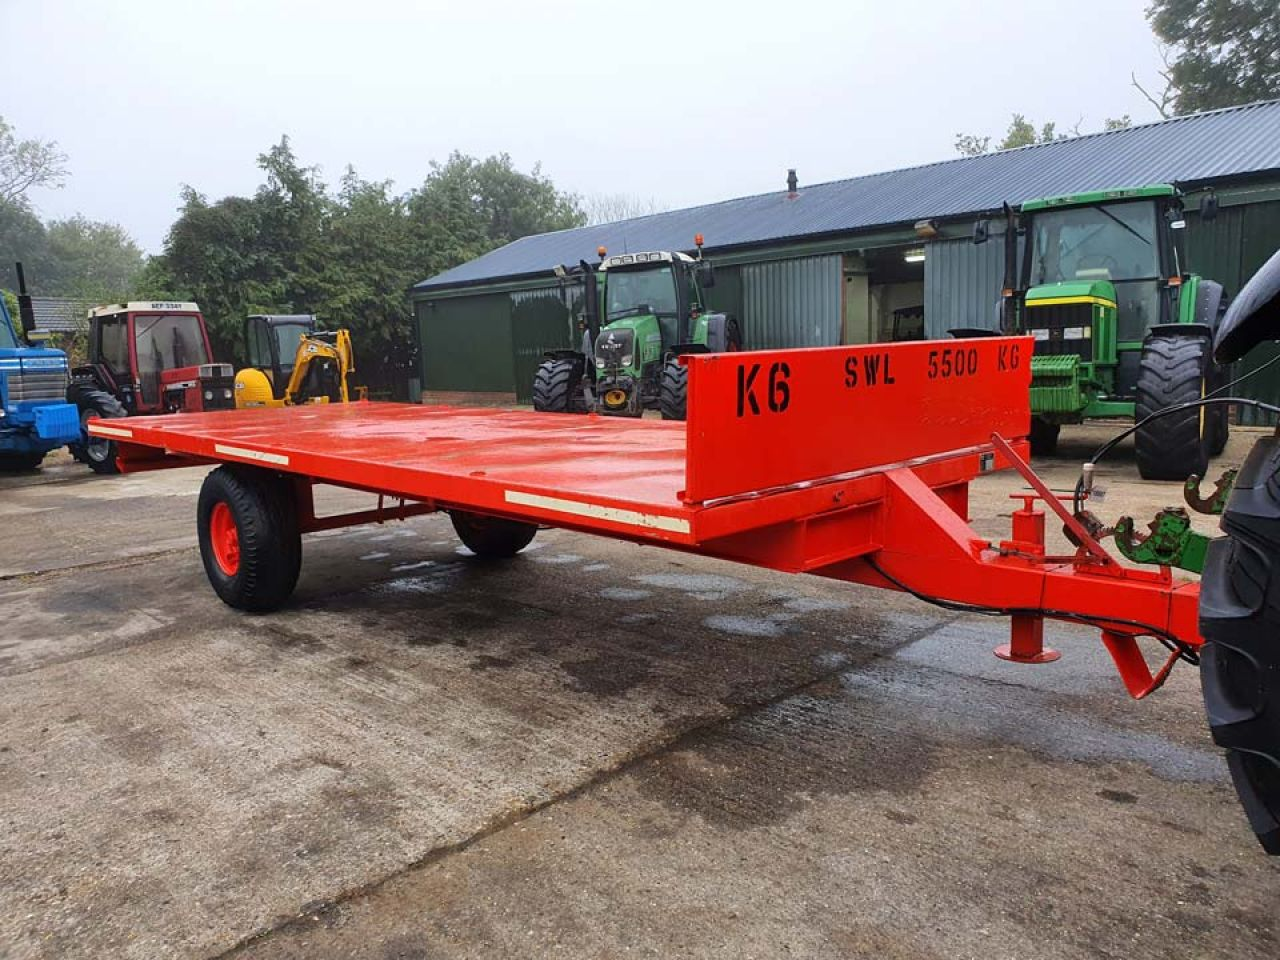 CLS SINGLE AXLE 5 TON FLATBED BALE TRAILER